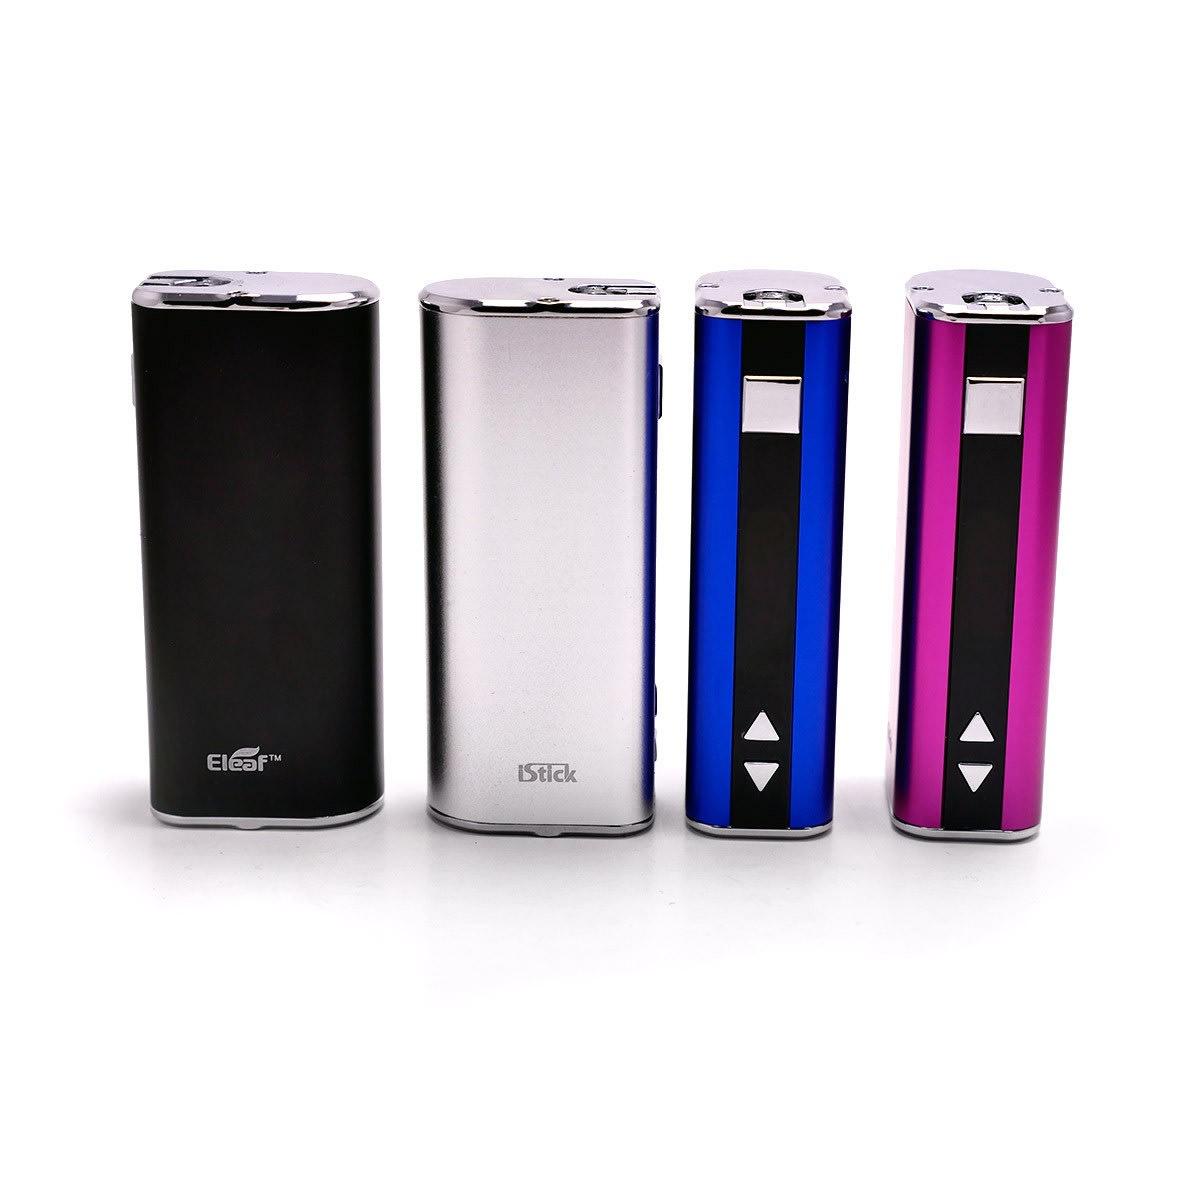 Eleaf iStick 20W Full Kit